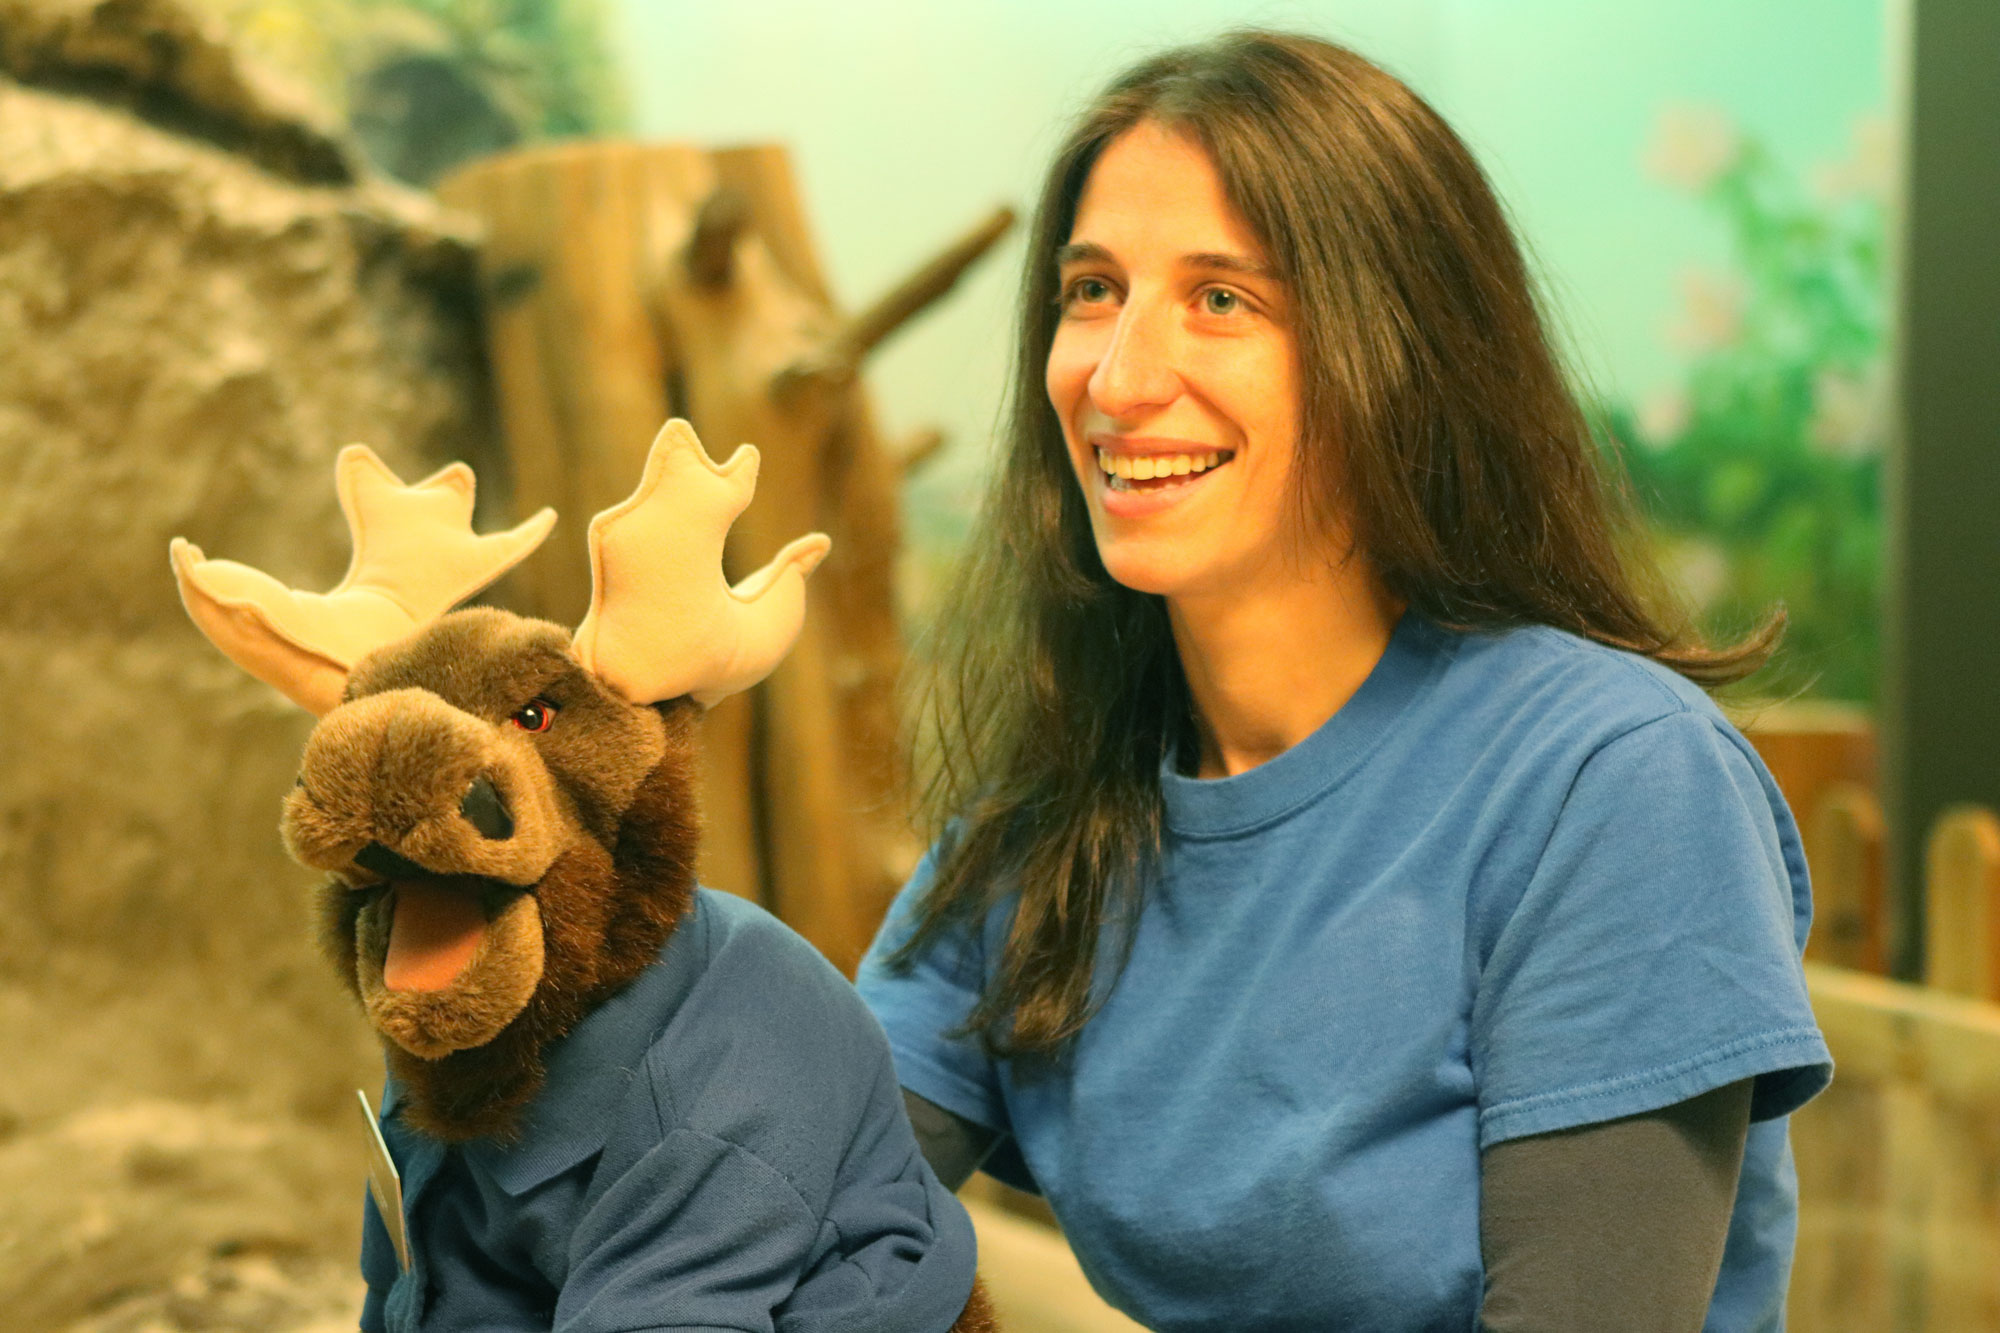 See the famous Marty the Moose and his staff sidekicks at the Academy of Natural Sciences' story time!